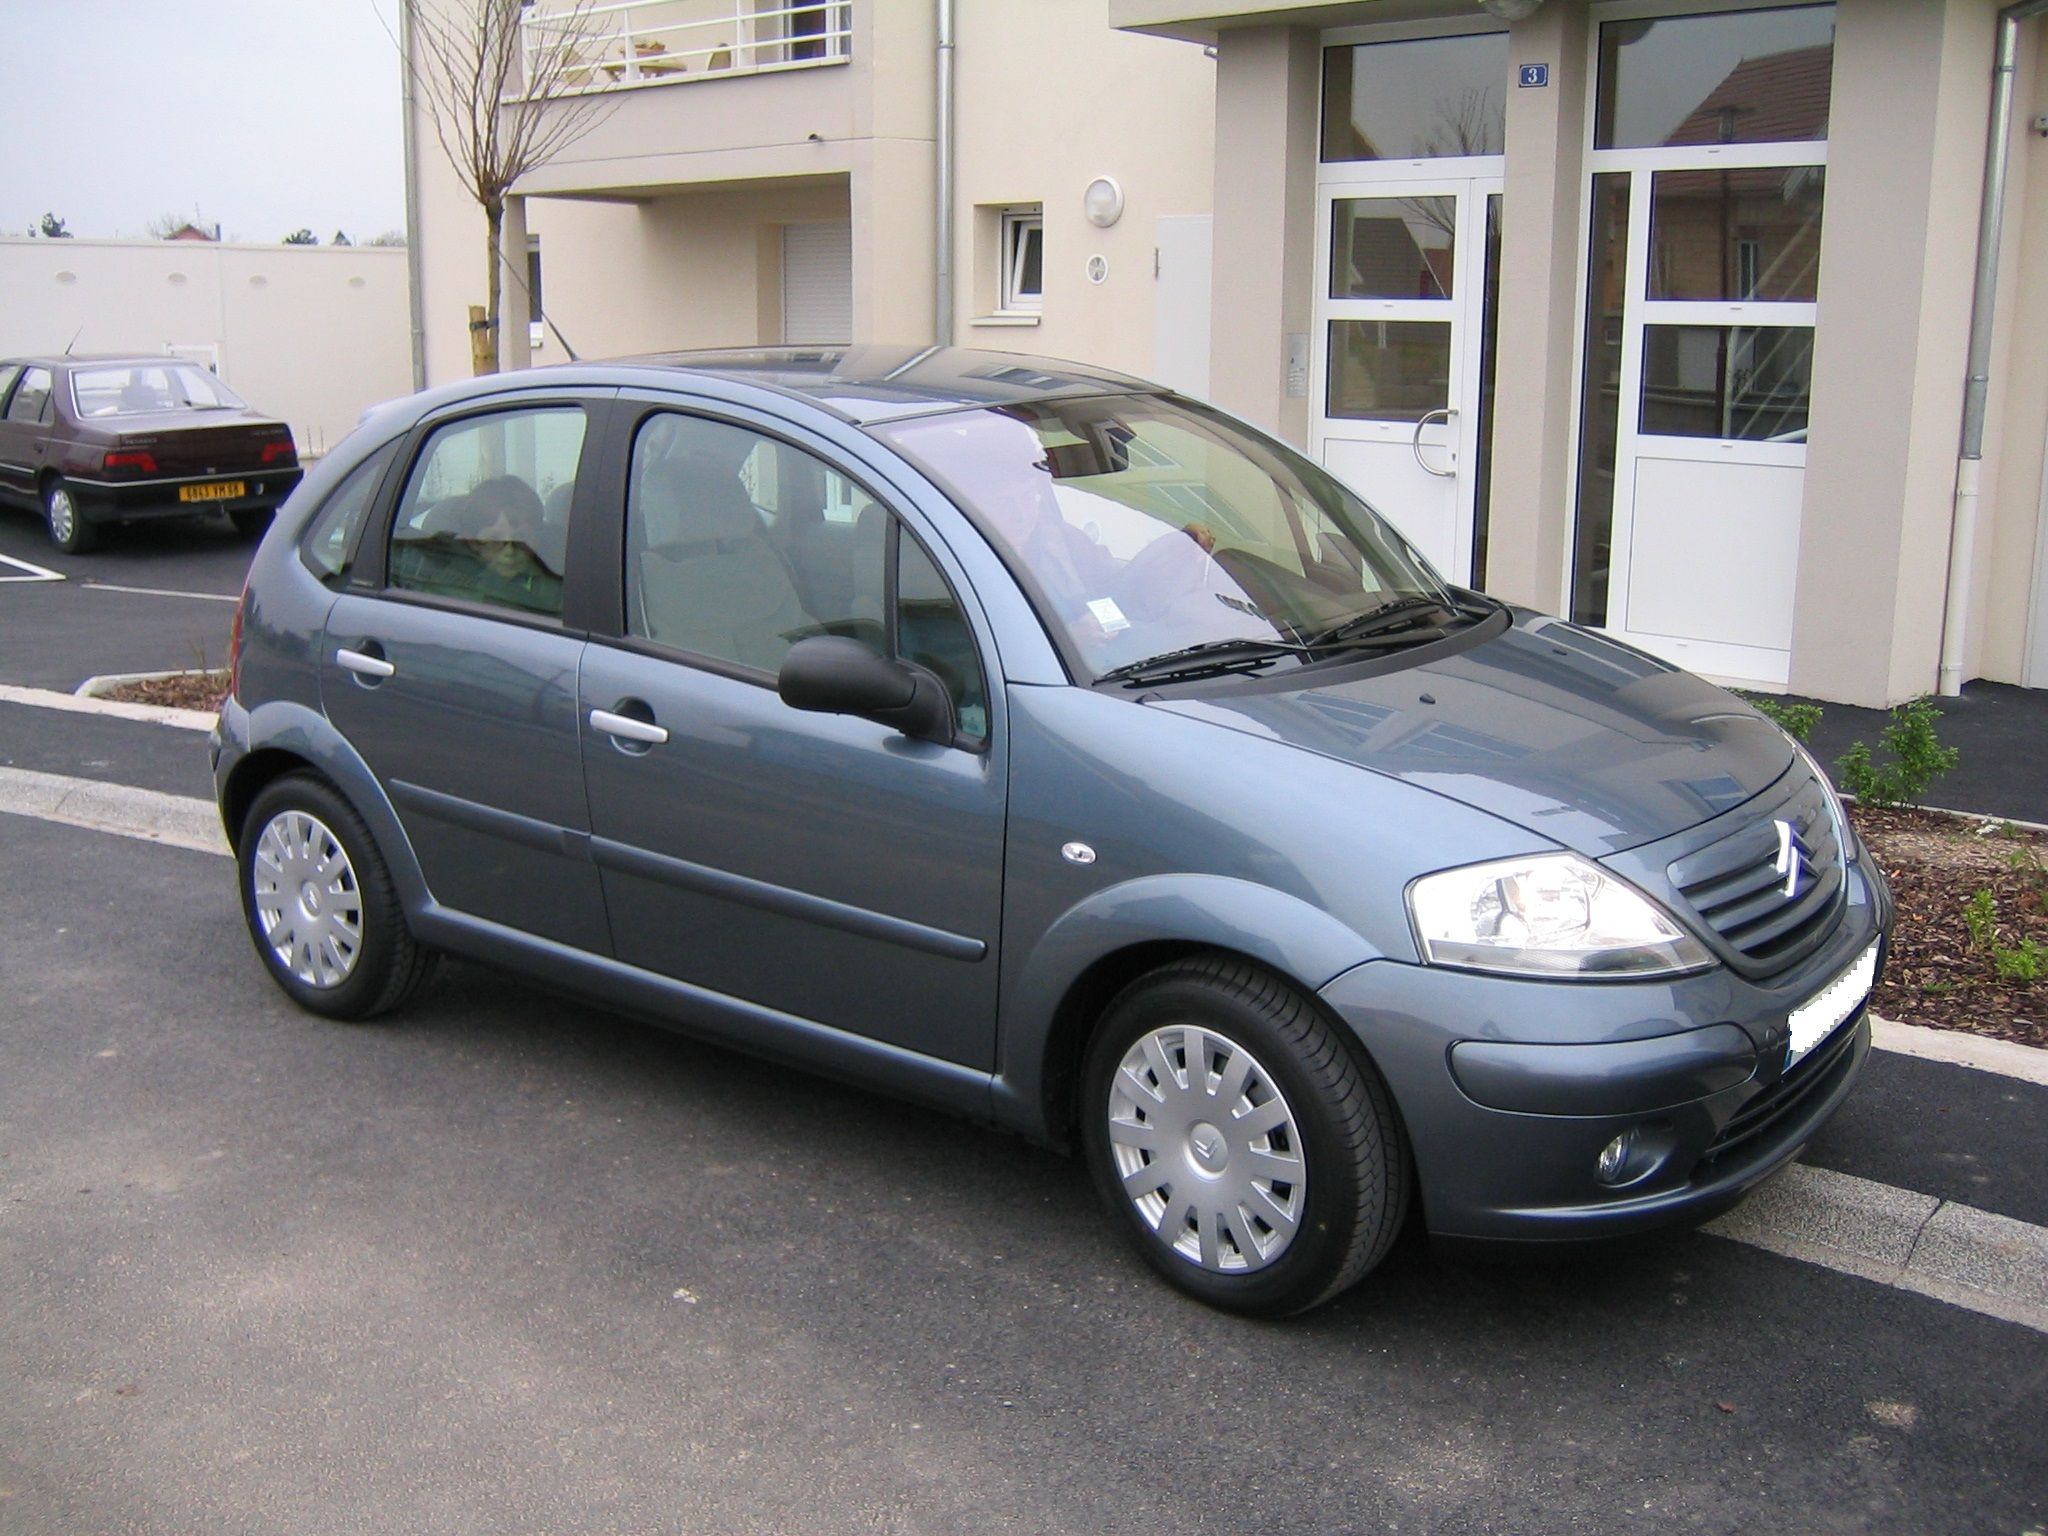 citroen c3 exclusive gris fer vendu 1300kms album. Black Bedroom Furniture Sets. Home Design Ideas